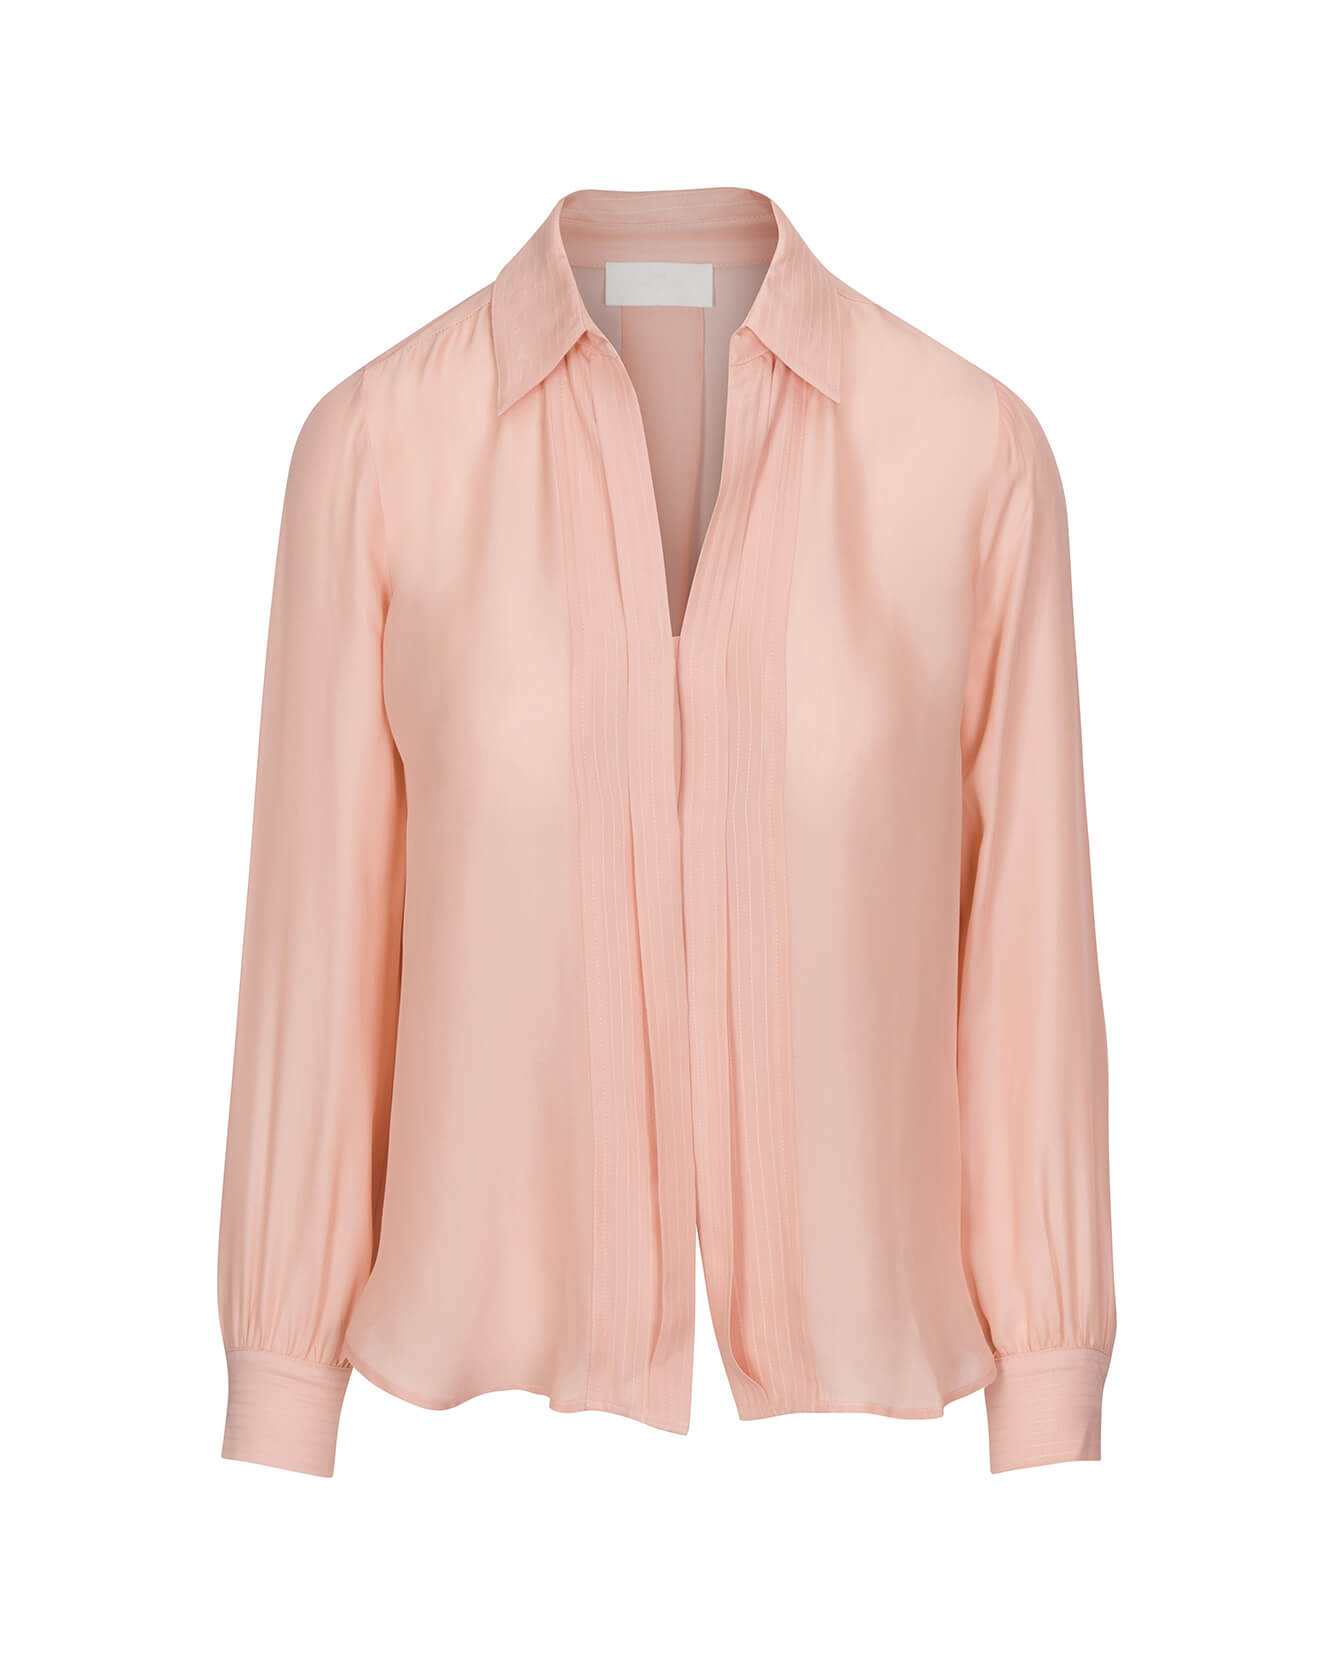 Image of Mini Placket Collared Shirt in Pink Dawn